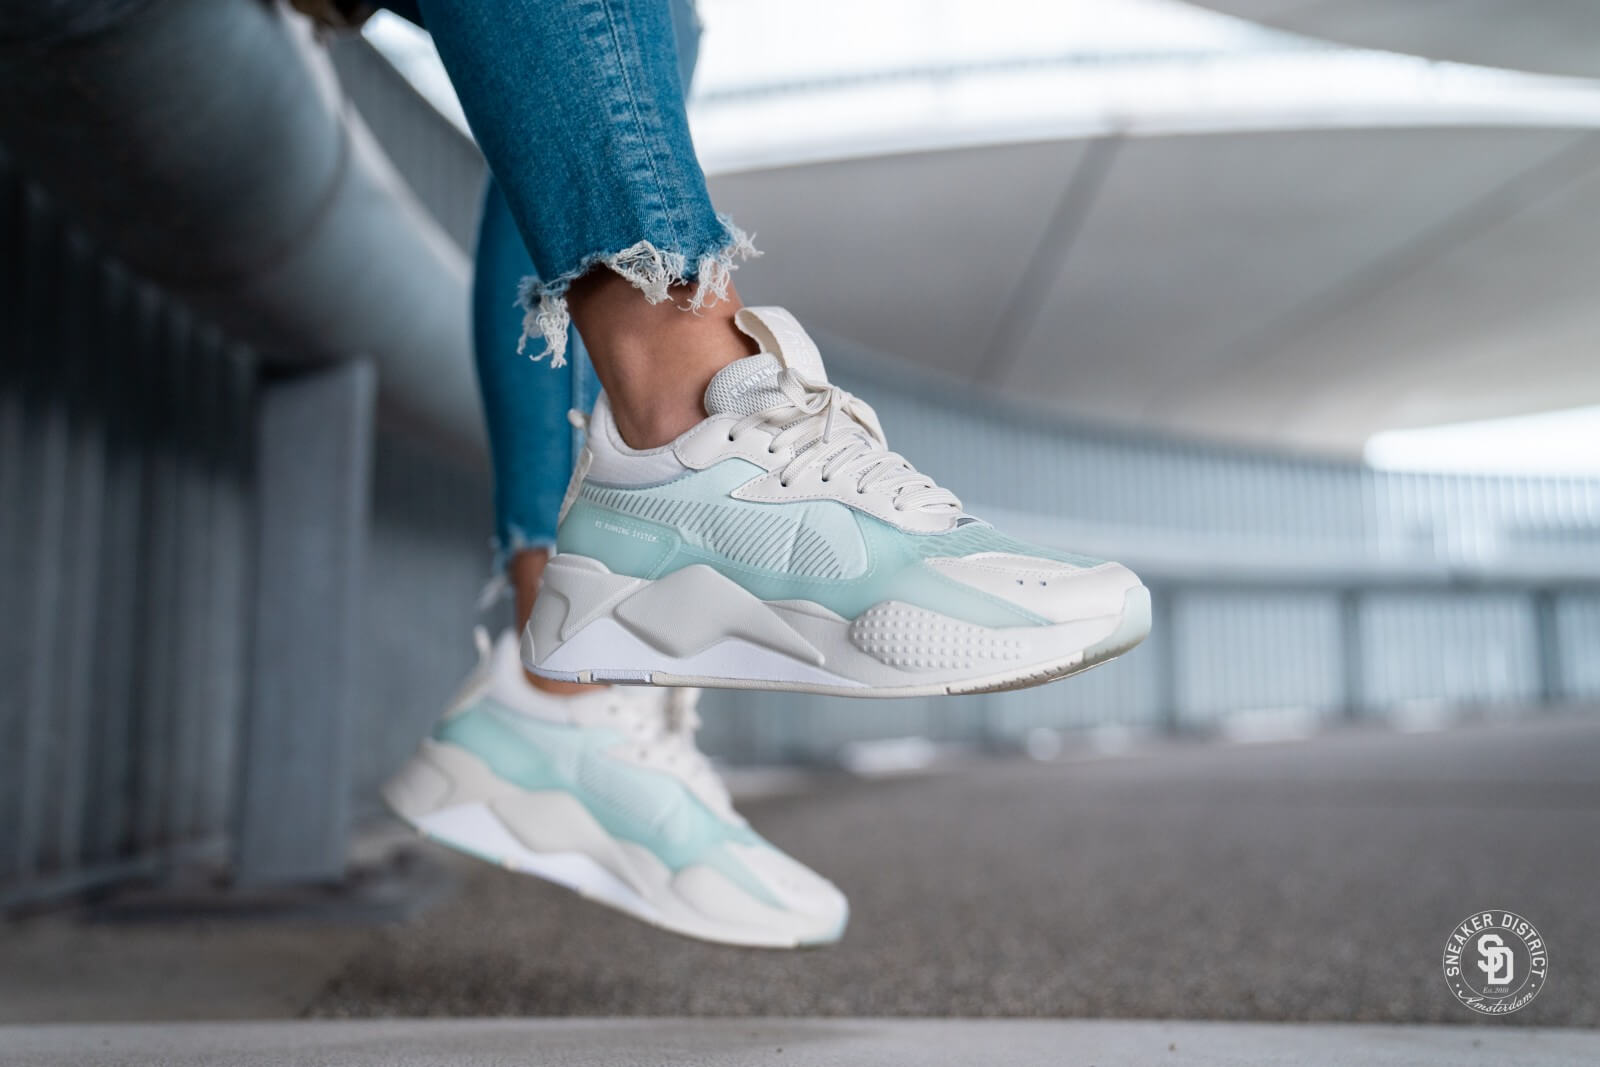 Puma RS-X Tech Vaporous Gray/Fair Aqua - 369329-02